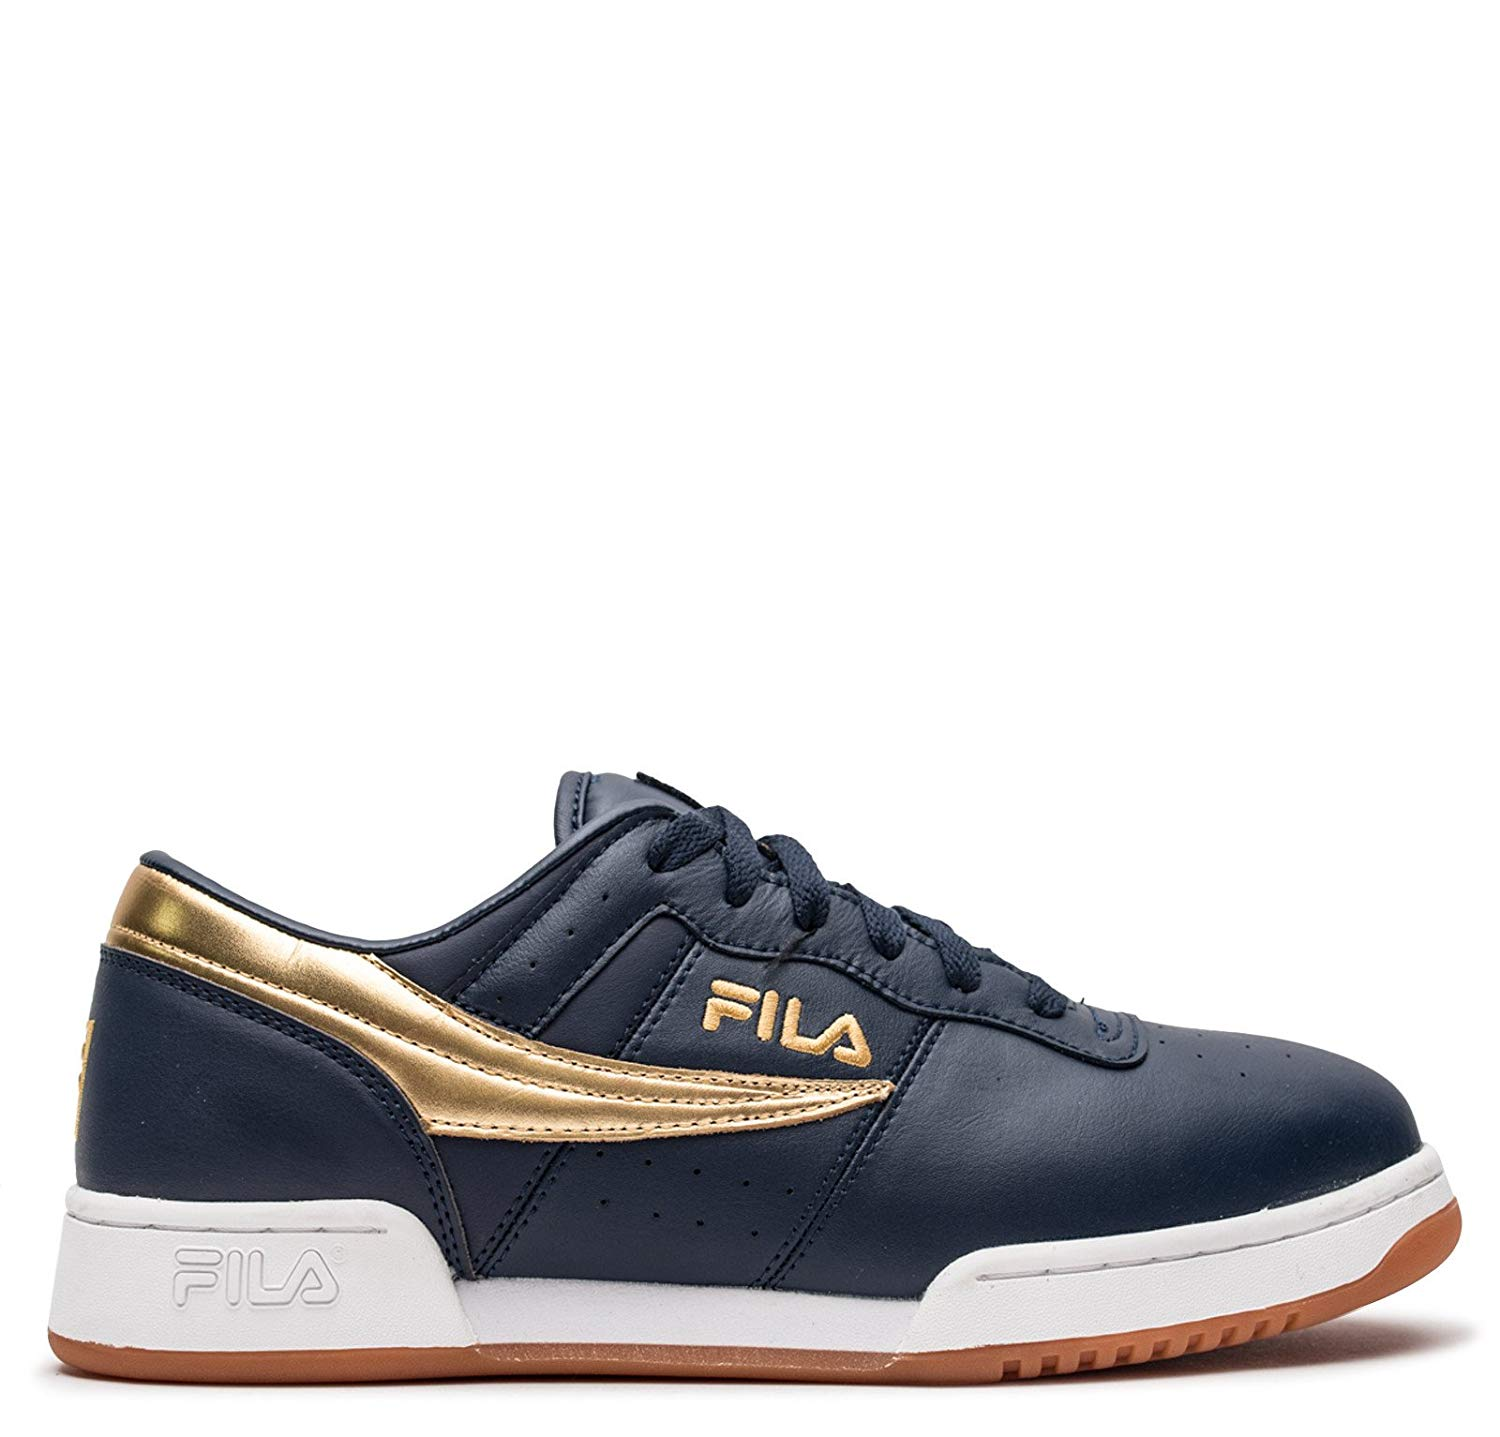 fila fitness shoes